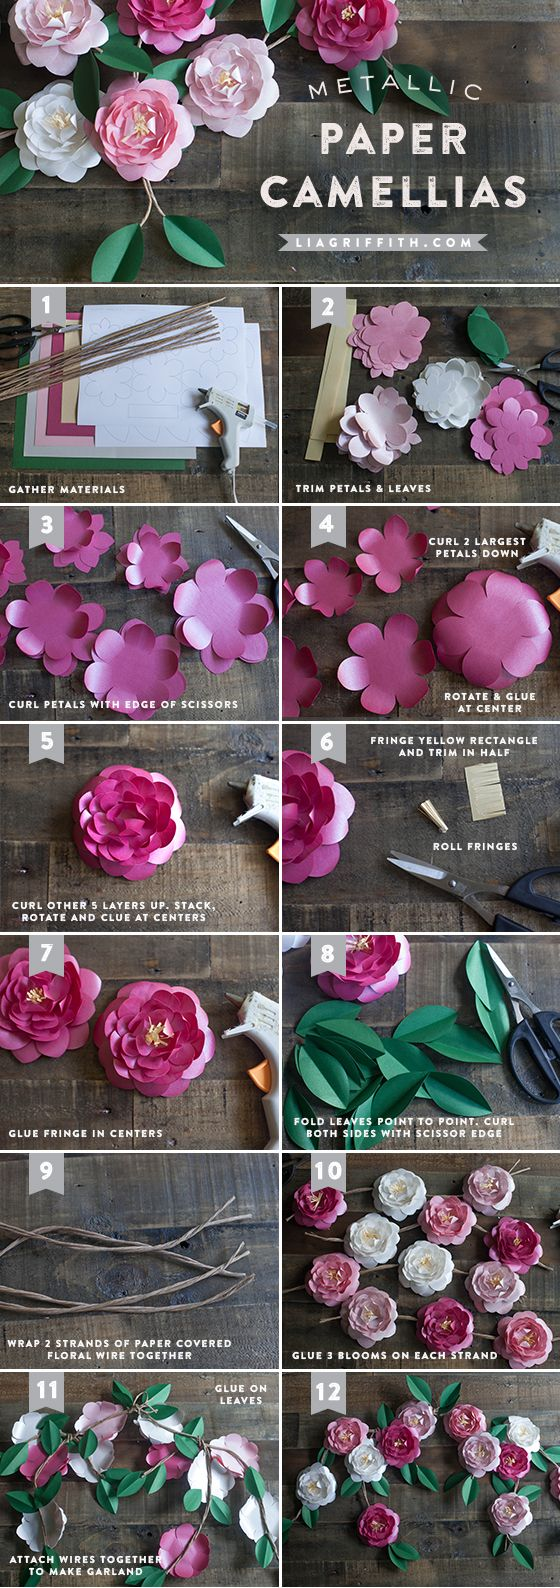 Diy Metallic Paper Camellias Pictures Photos And Images For